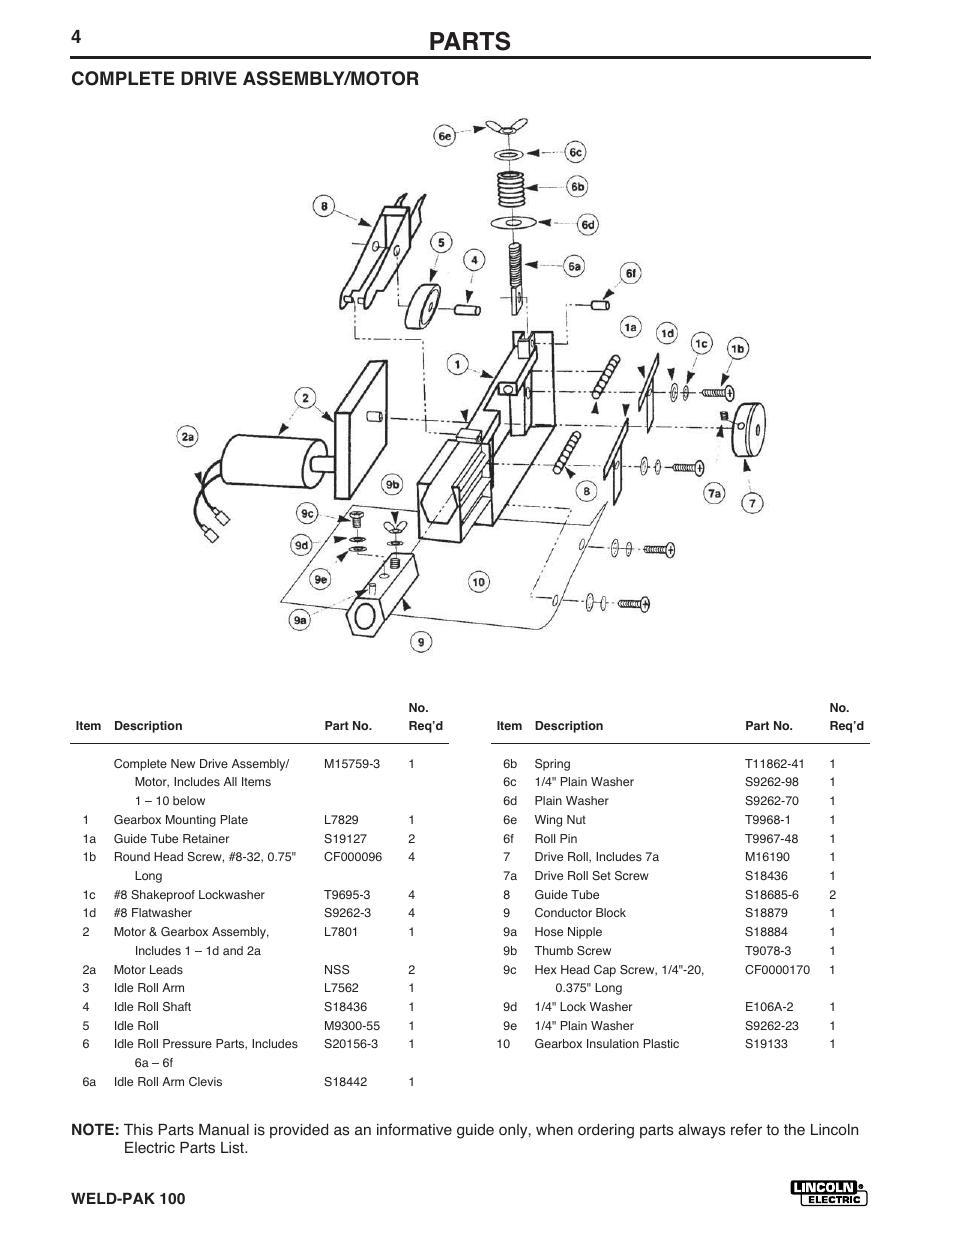 Parts, Complete drive assembly/motor | Lincoln Electric IM546 WELD-PAK 100  PLUS User Manual | Page 50 / 60